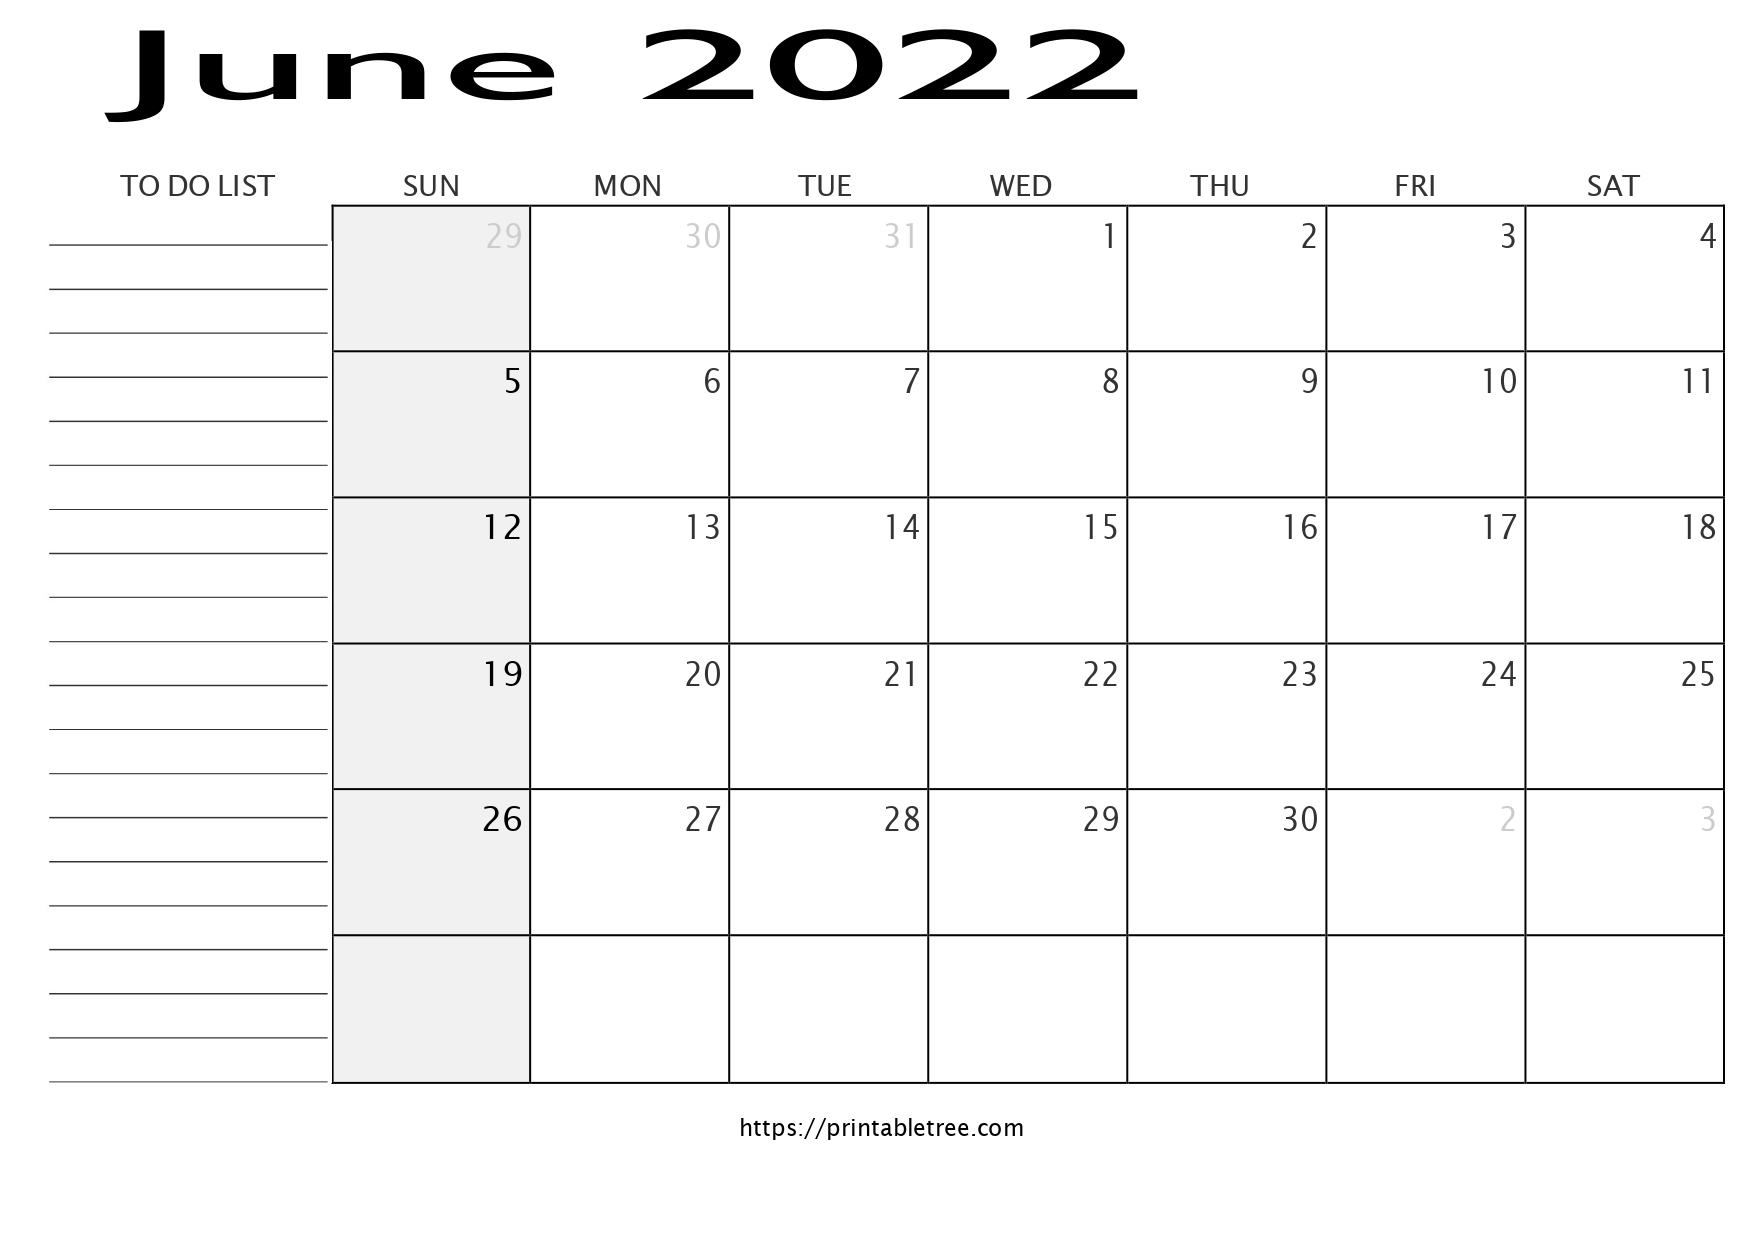 Monthly Calendar with To Do List June 2022